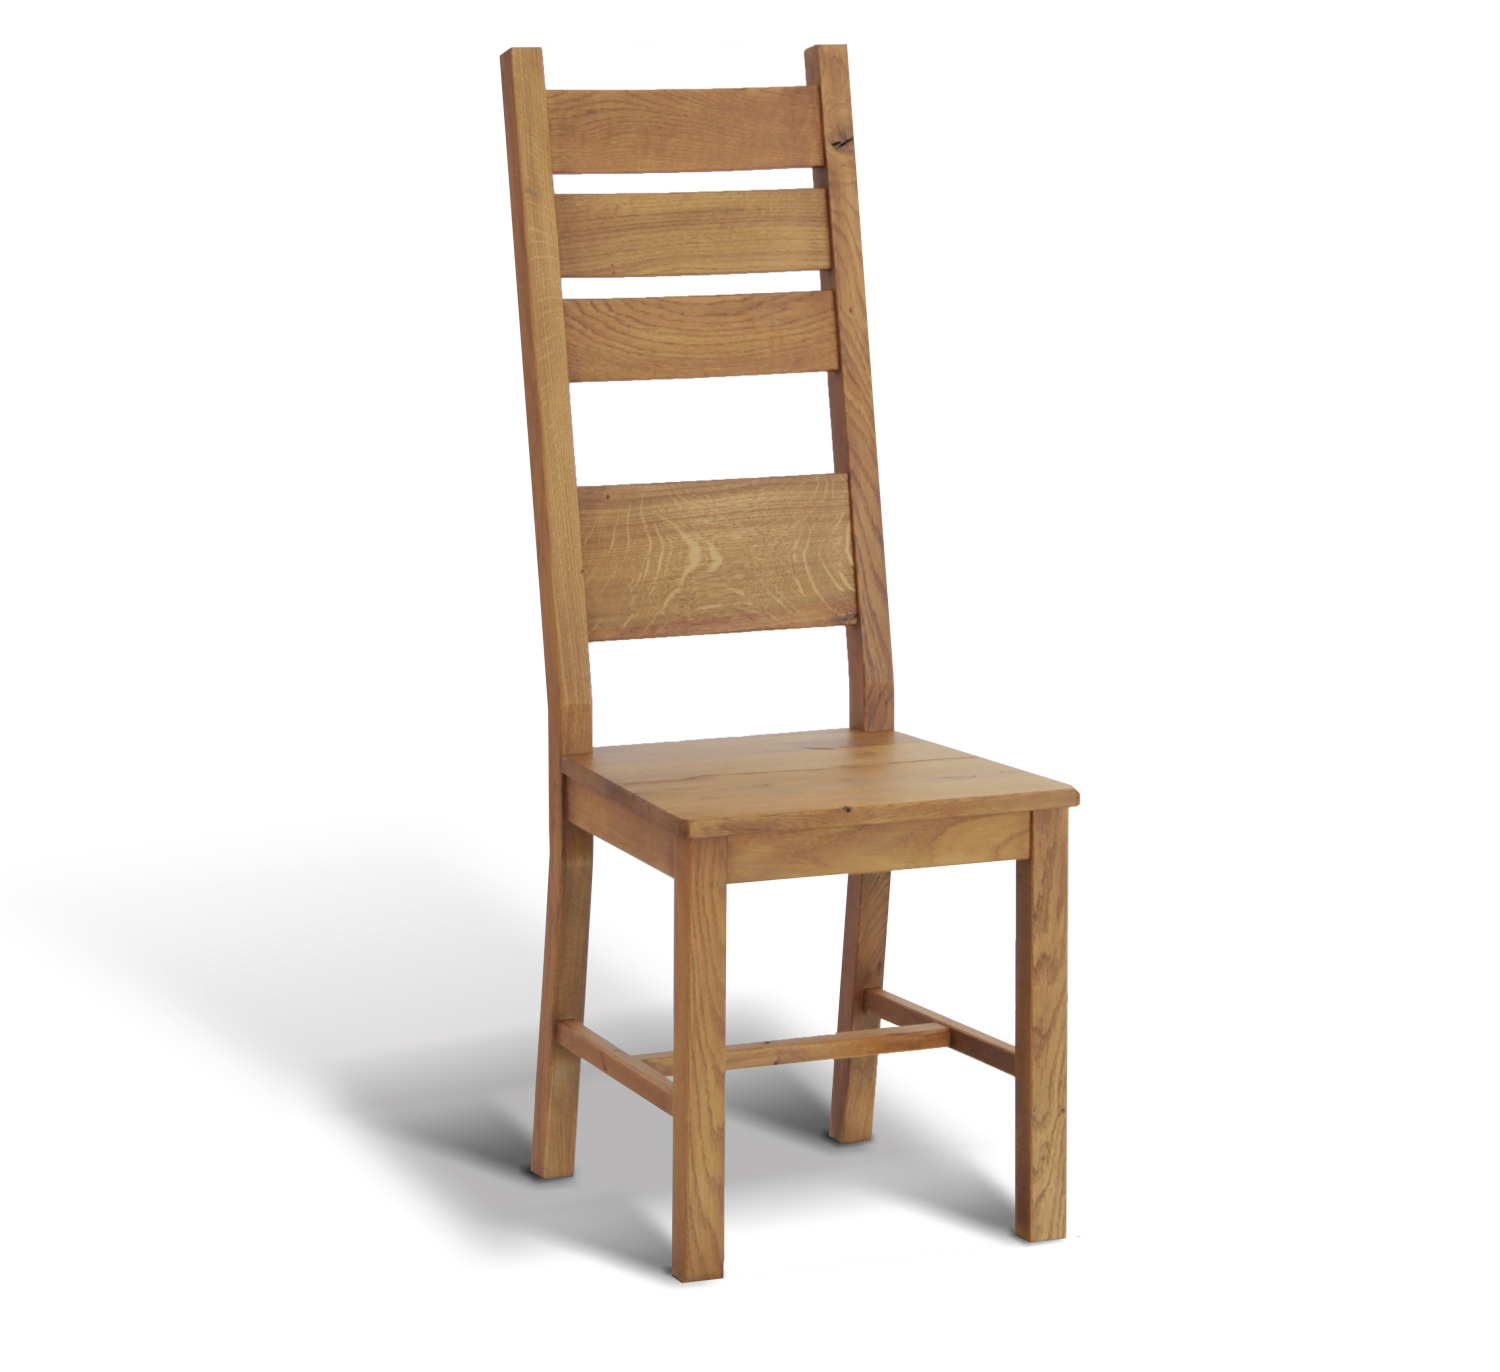 High backed chair